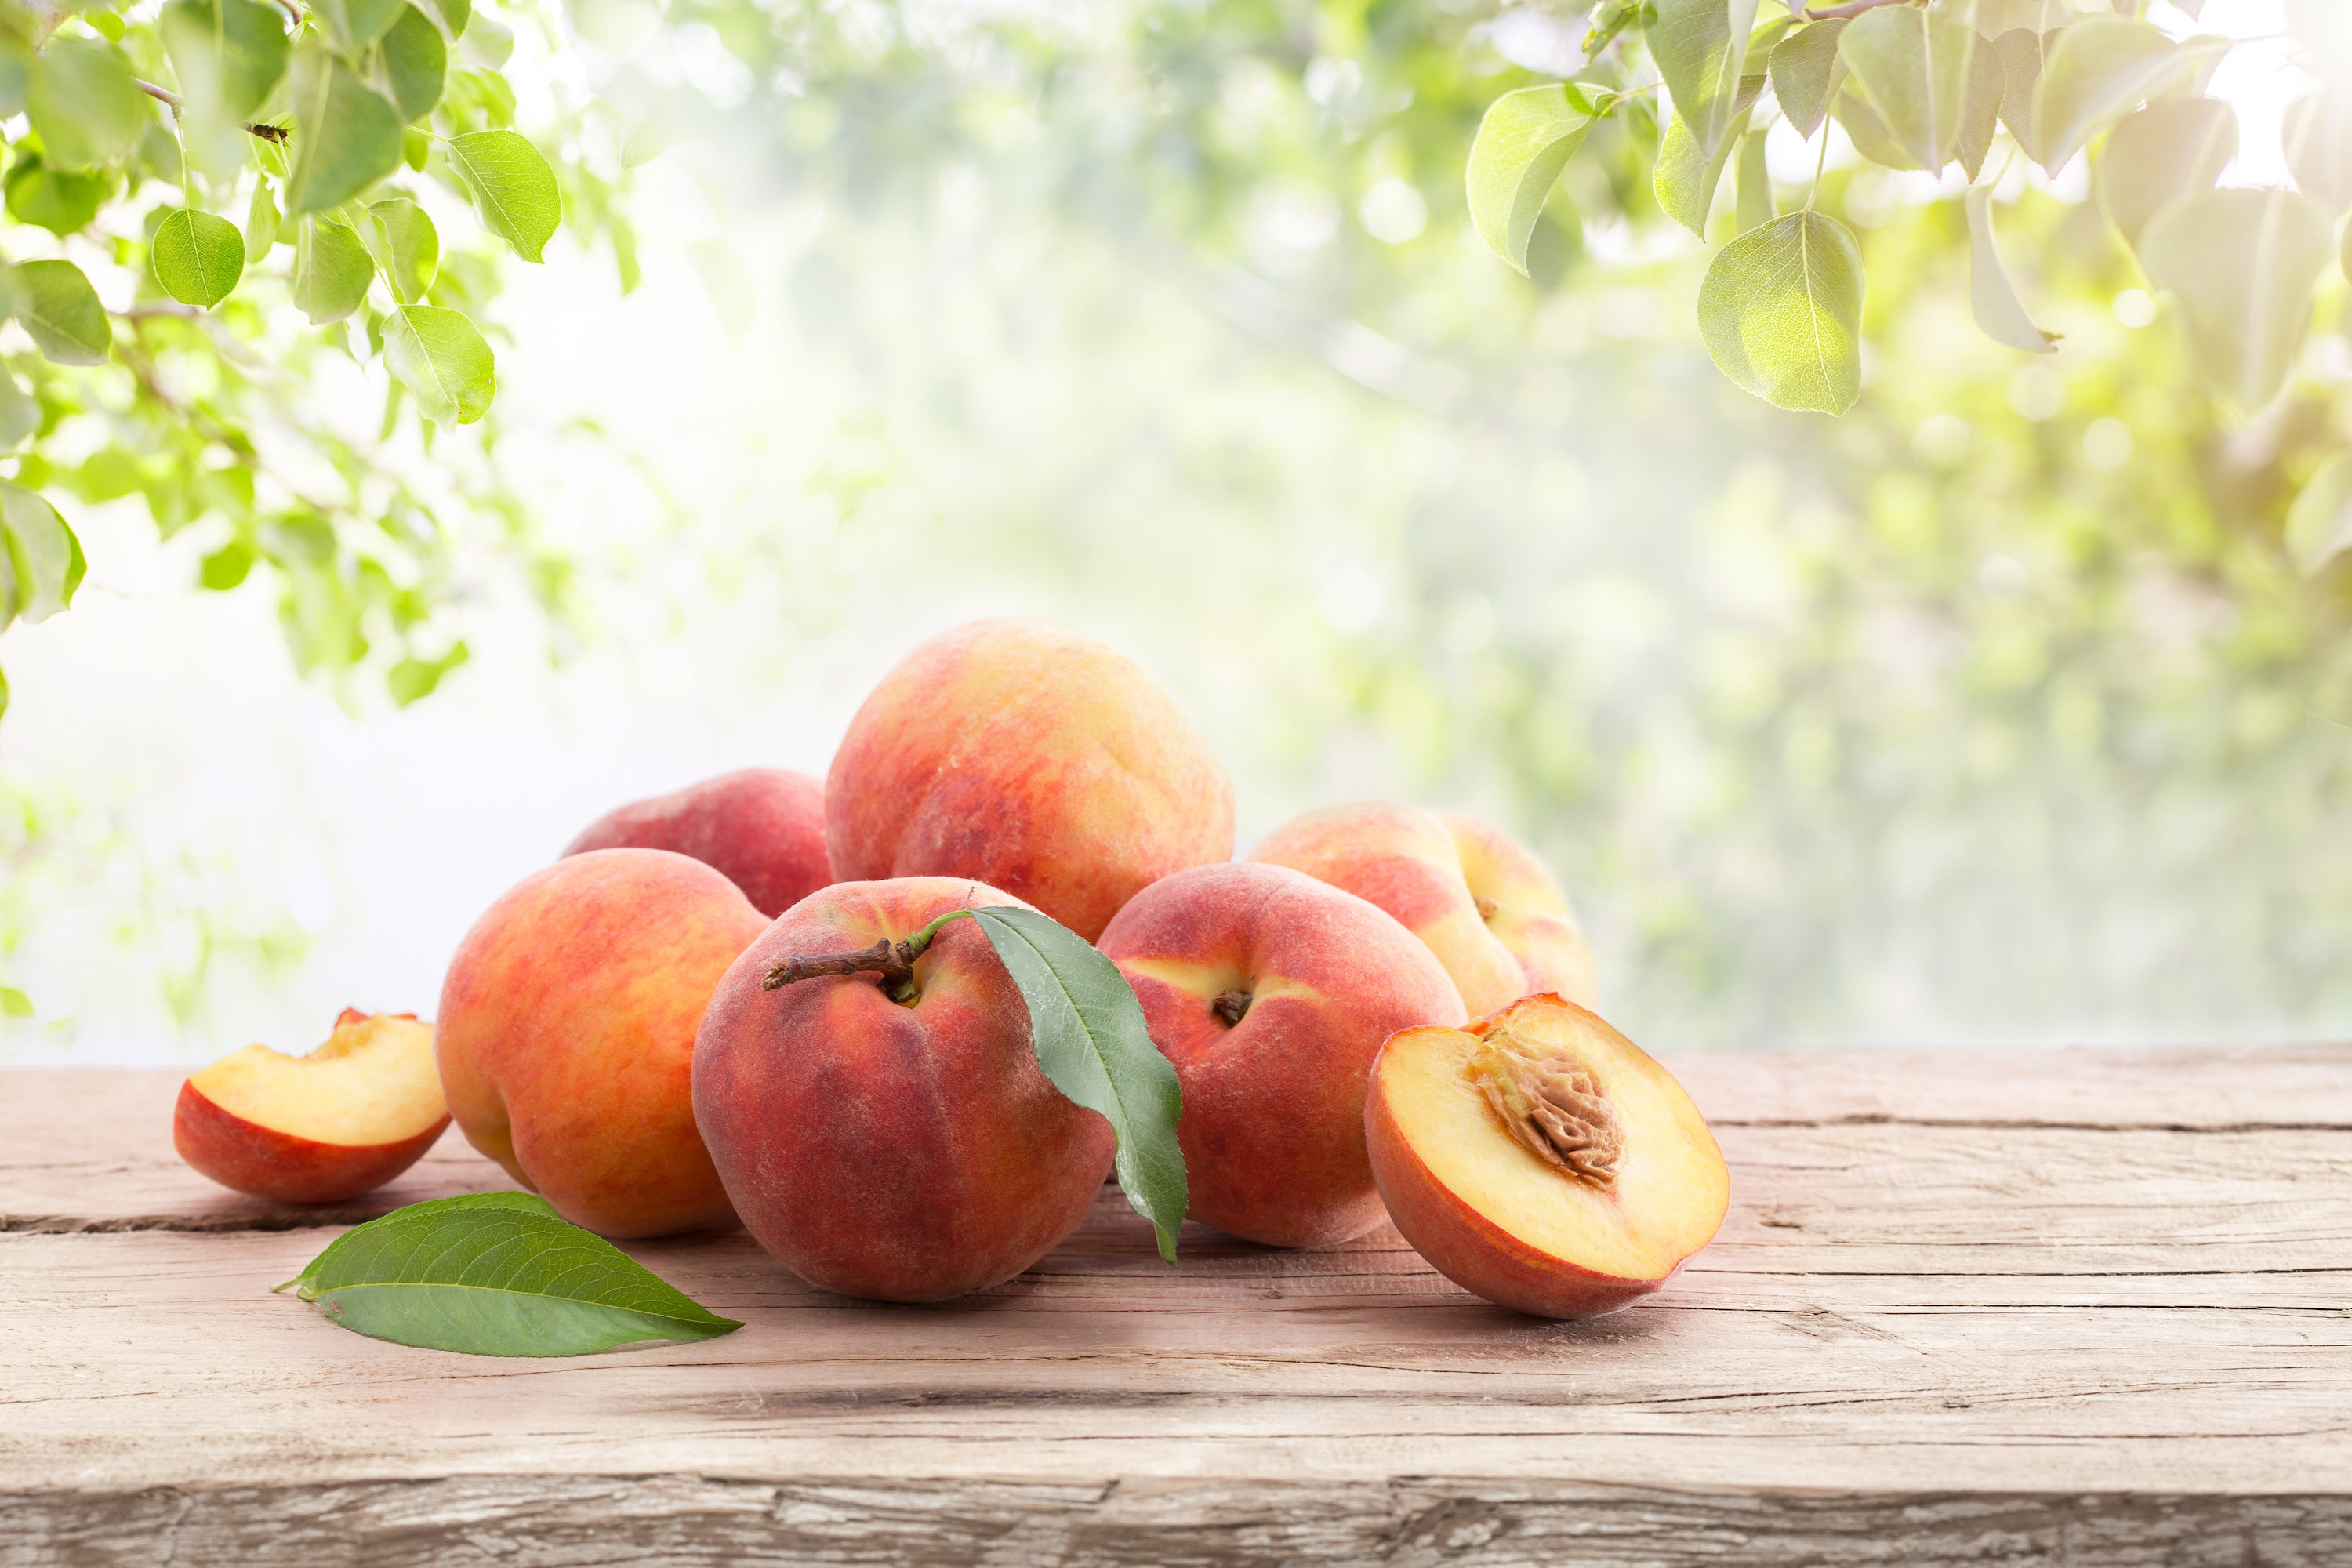 peaches on a wooden plank under a tree on a sunny day